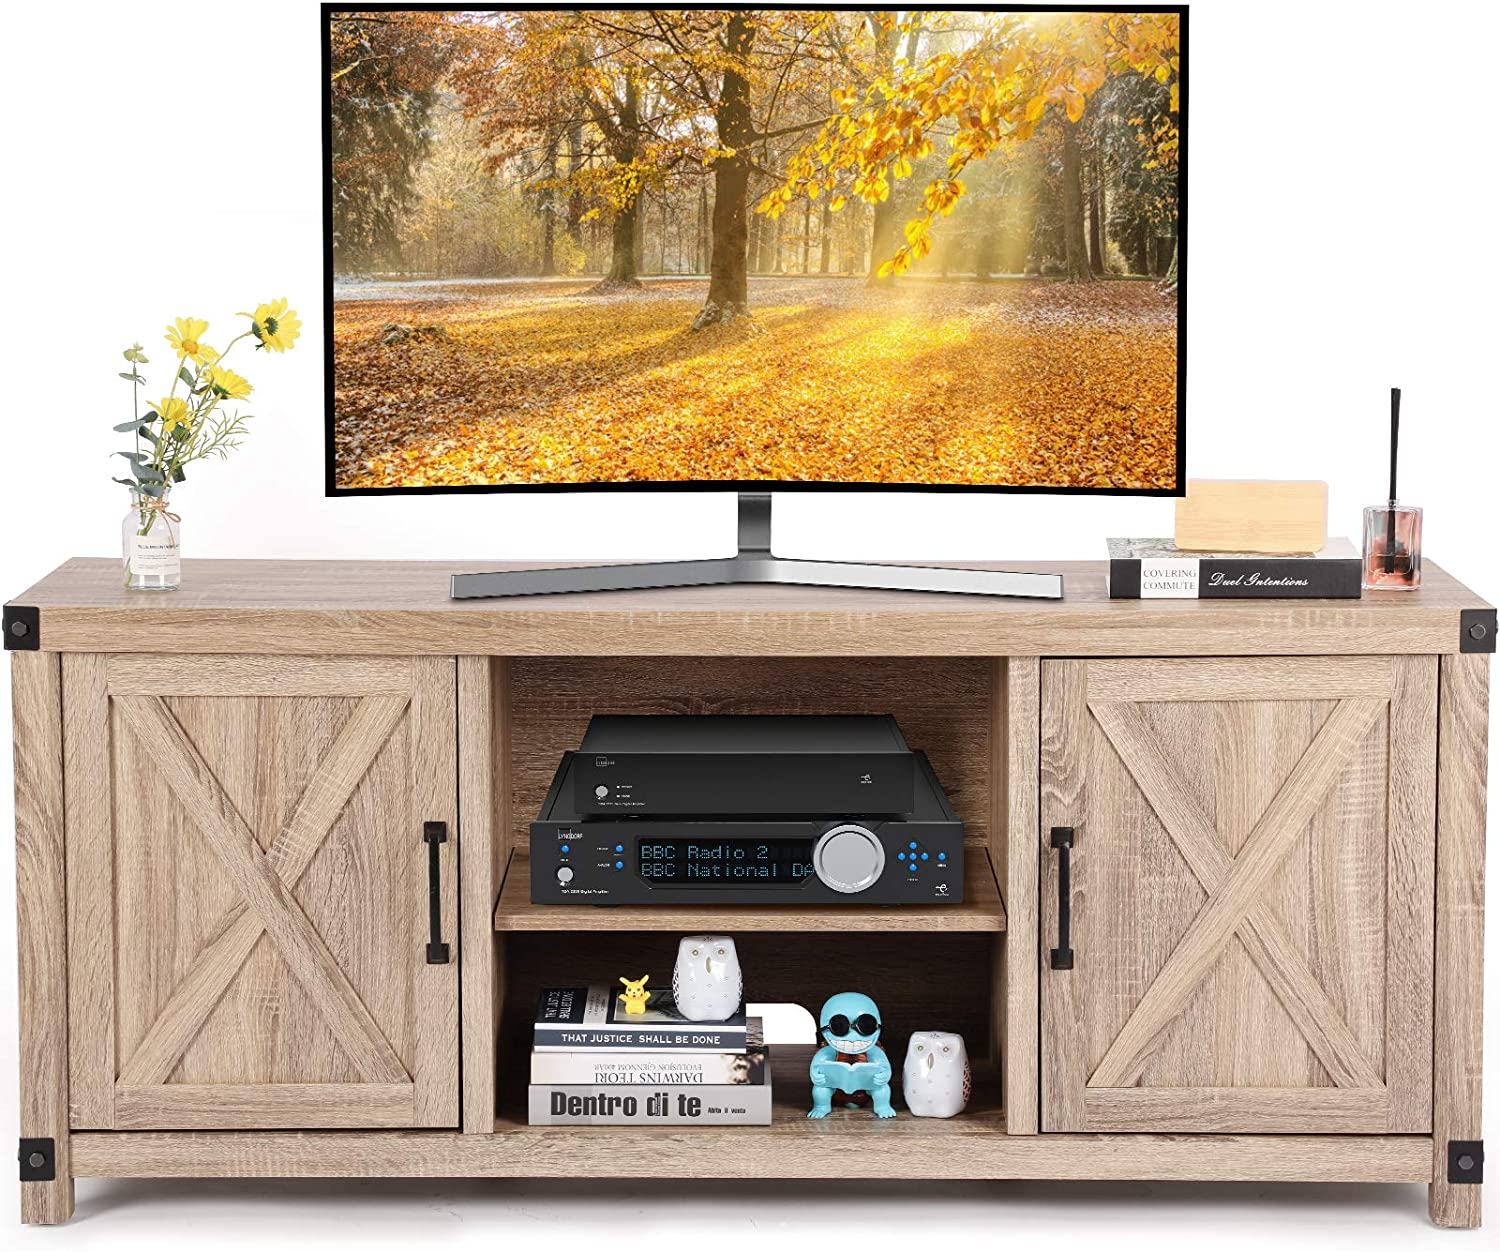 TV Console Cabinet for TVs up to 65 Inch W/Media Shelves, Farmhouse TV Stand Style Entertainment Center for Soundbar or Other Media, Barn Door TV Stand with Storage for Living Room, APRTS02L